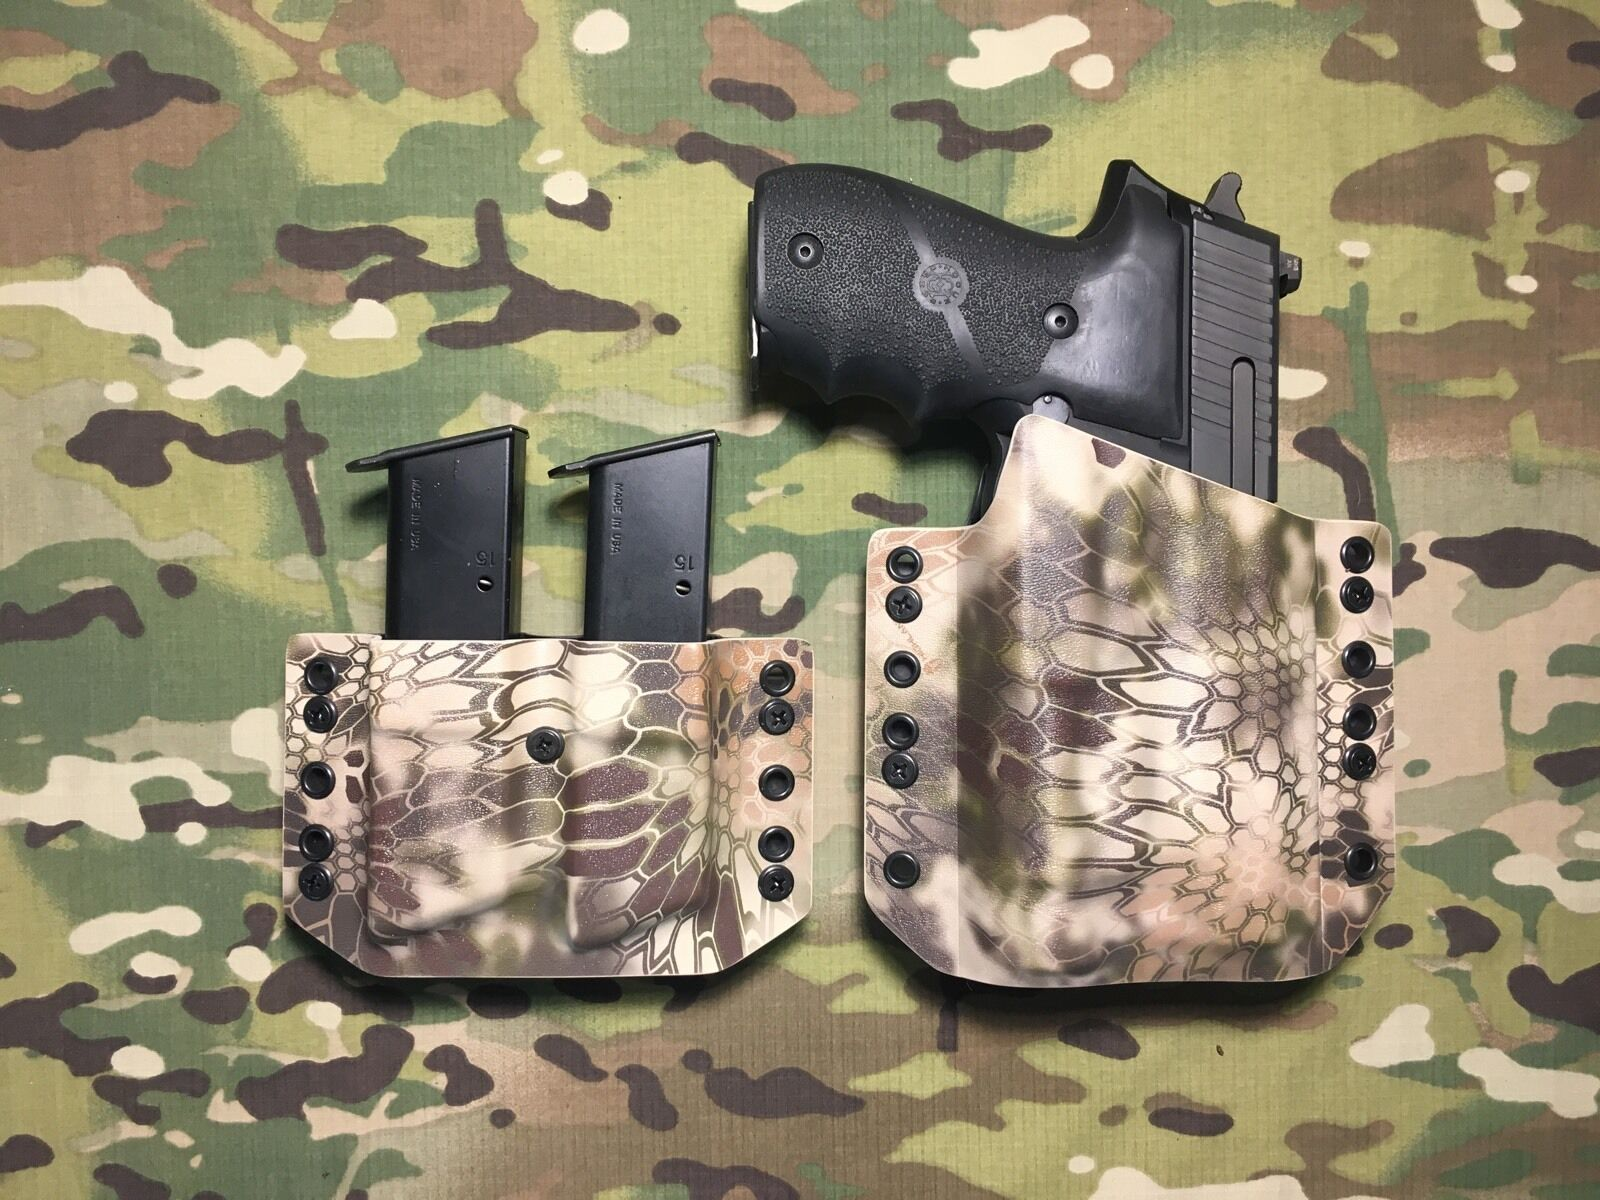 Kryptek Highlander Kydex Holster SIG P226 Streamlight Streamlight P226 TLR-1 w/Dual Mag Carrier c9a2a8